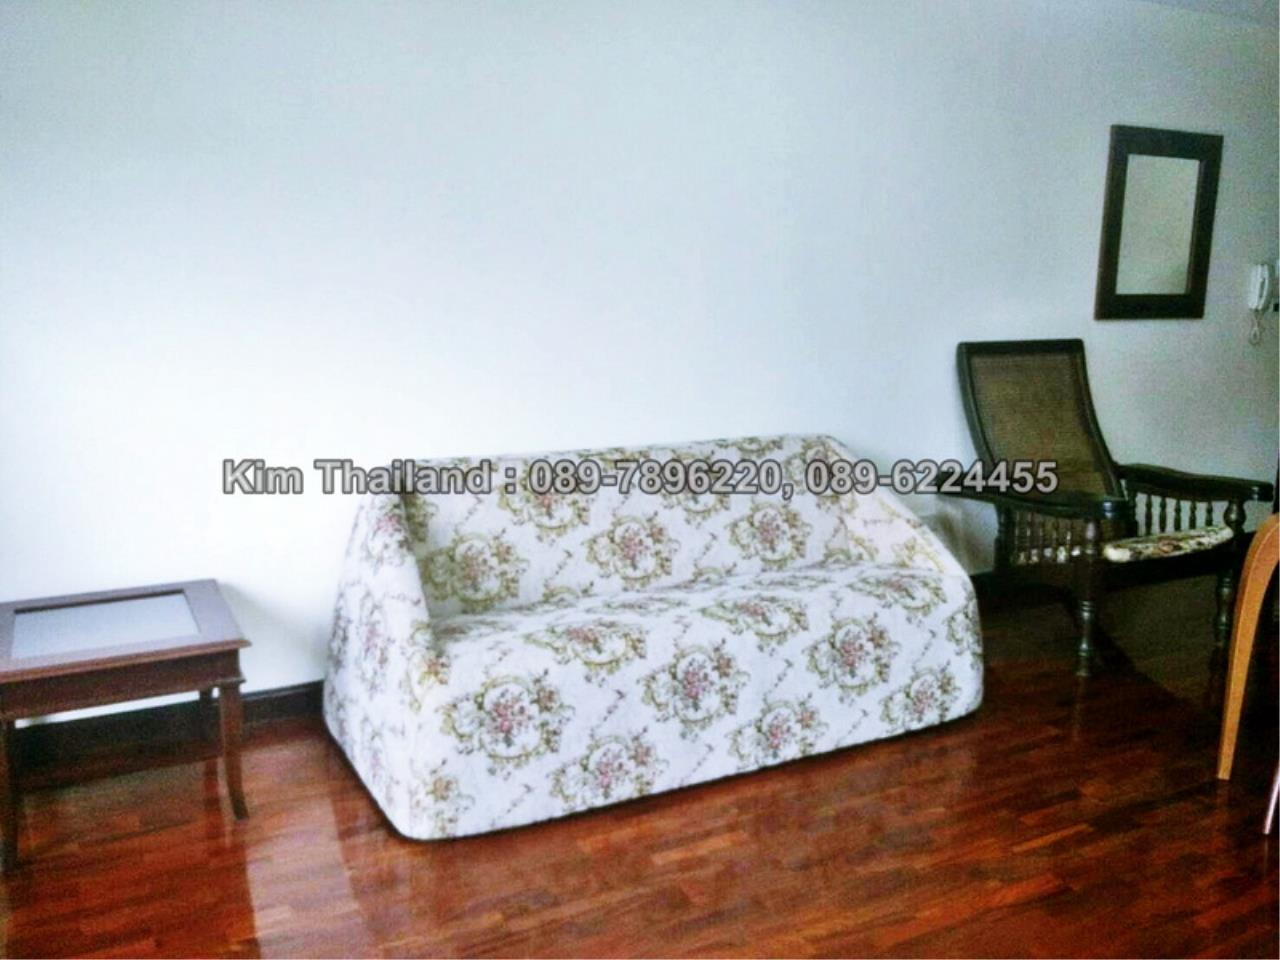 BKKcondorental Agency's For rent, Apartment 999 Residence.  Area 80 sq.m.  3